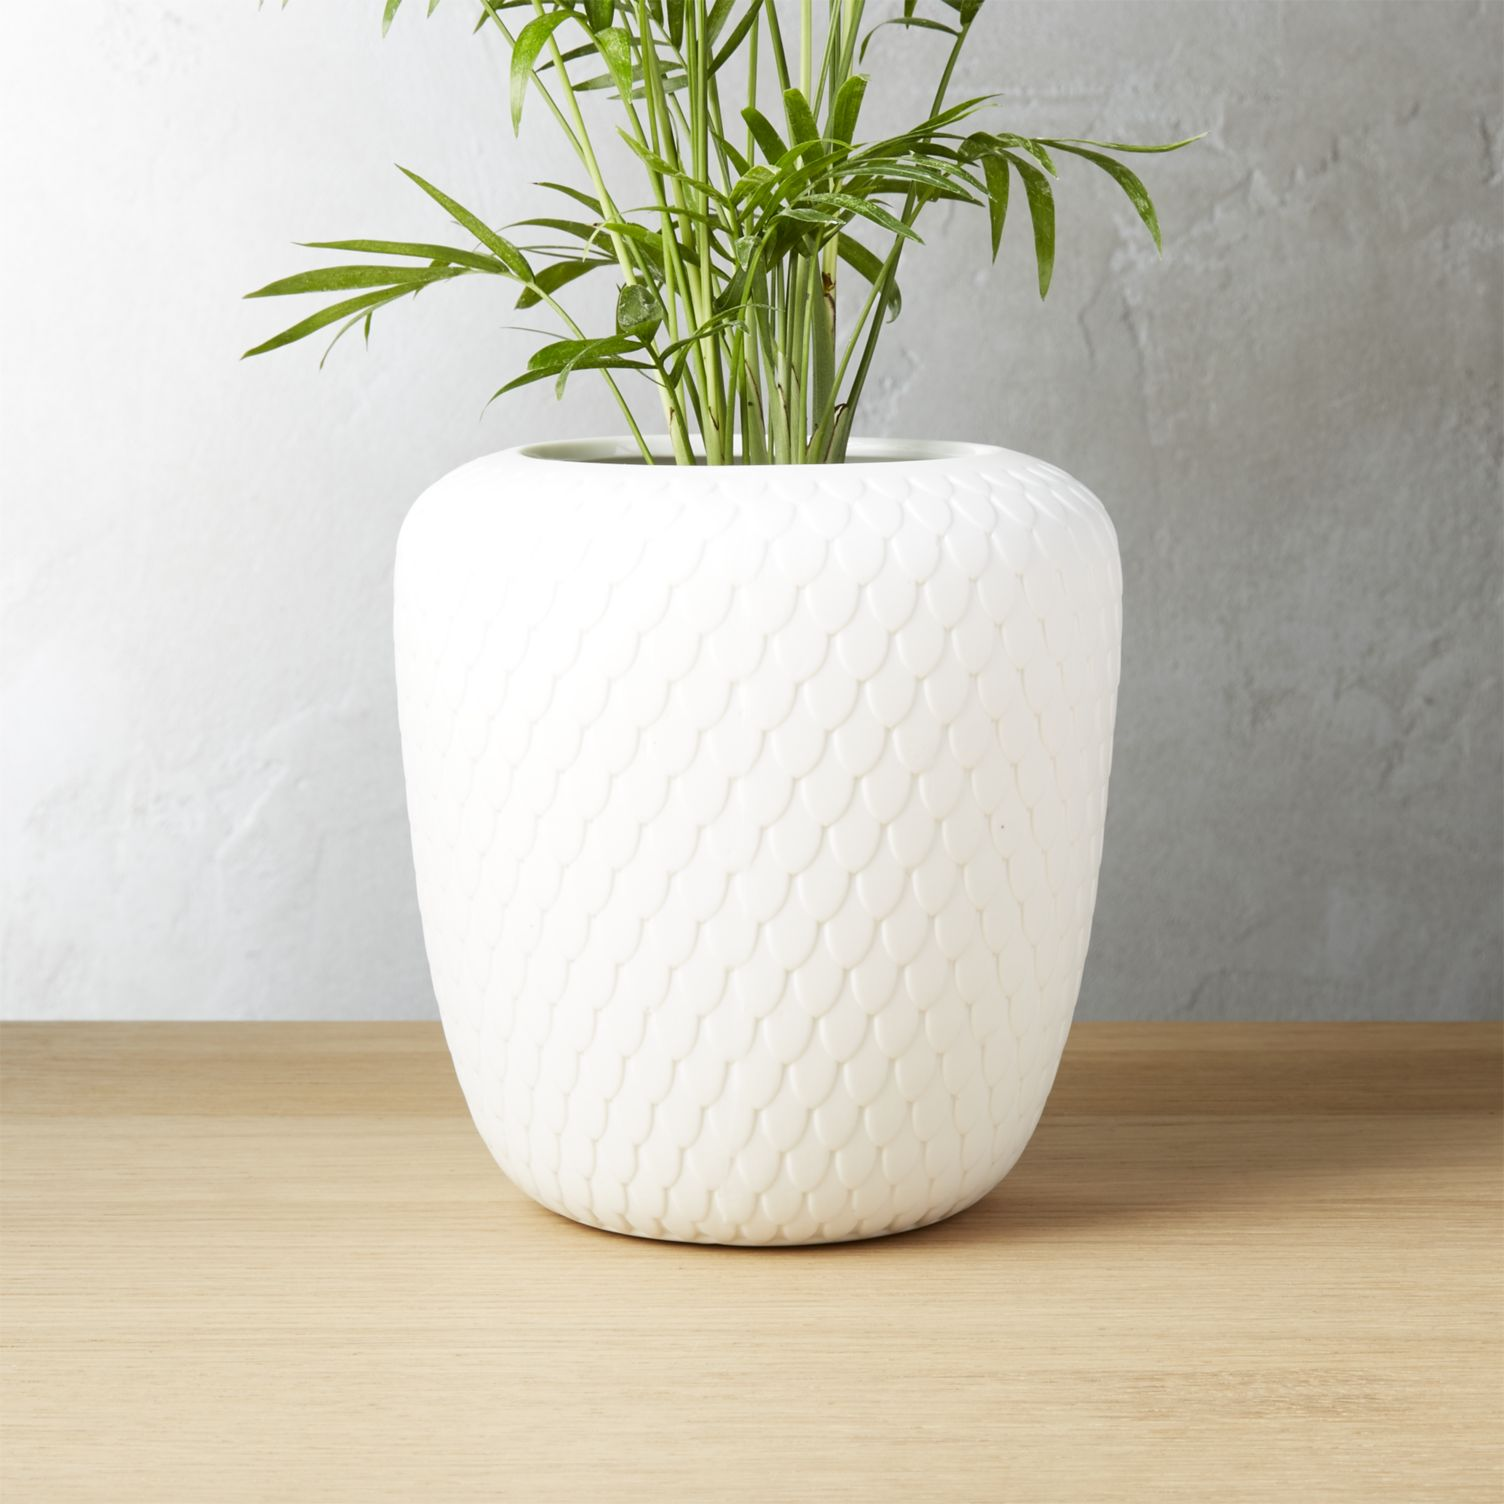 White planter from CB2